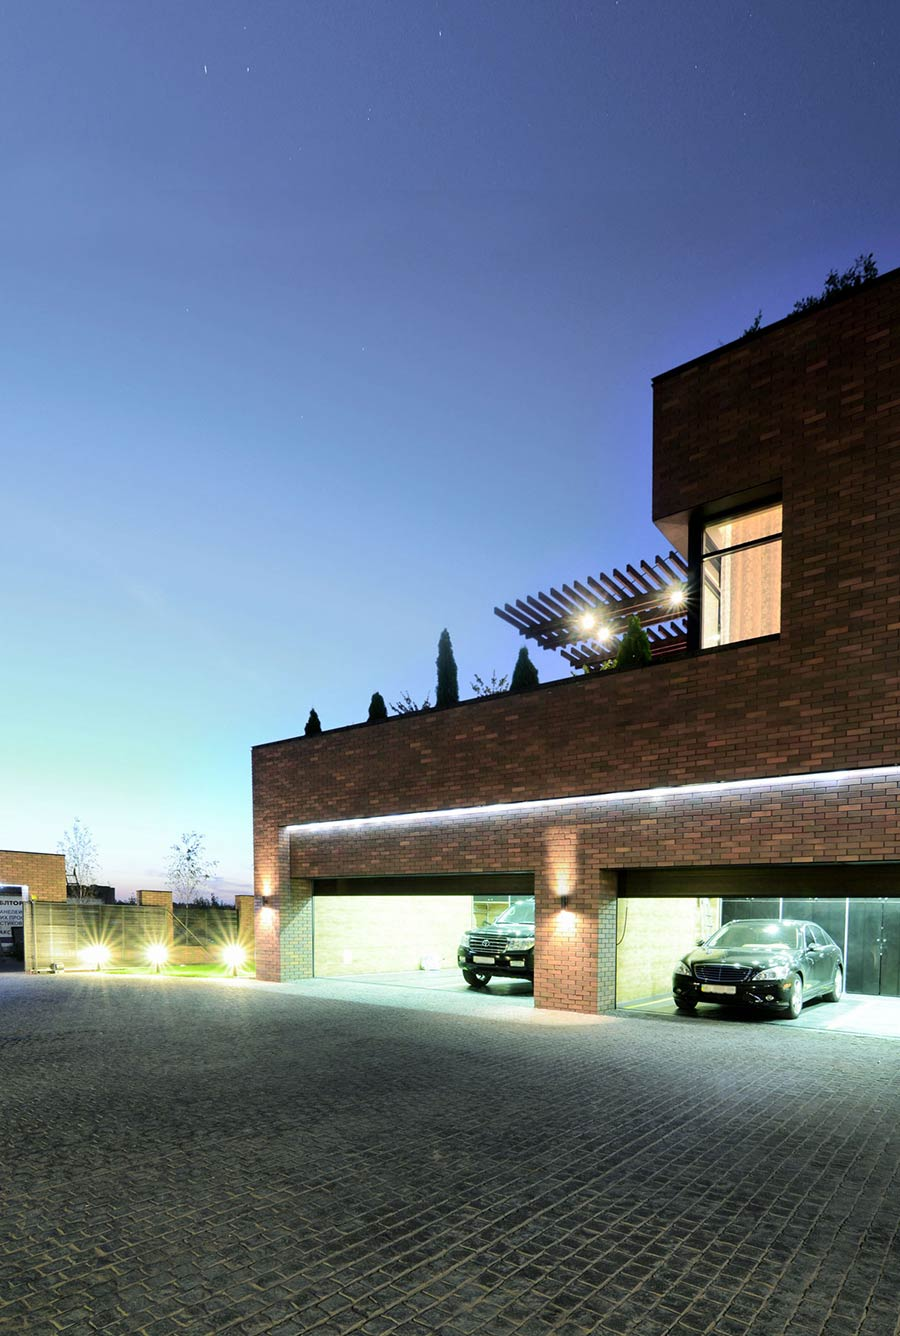 Garage, Lighting, Driveway, Large Family Residence in Kiev, Ukraine